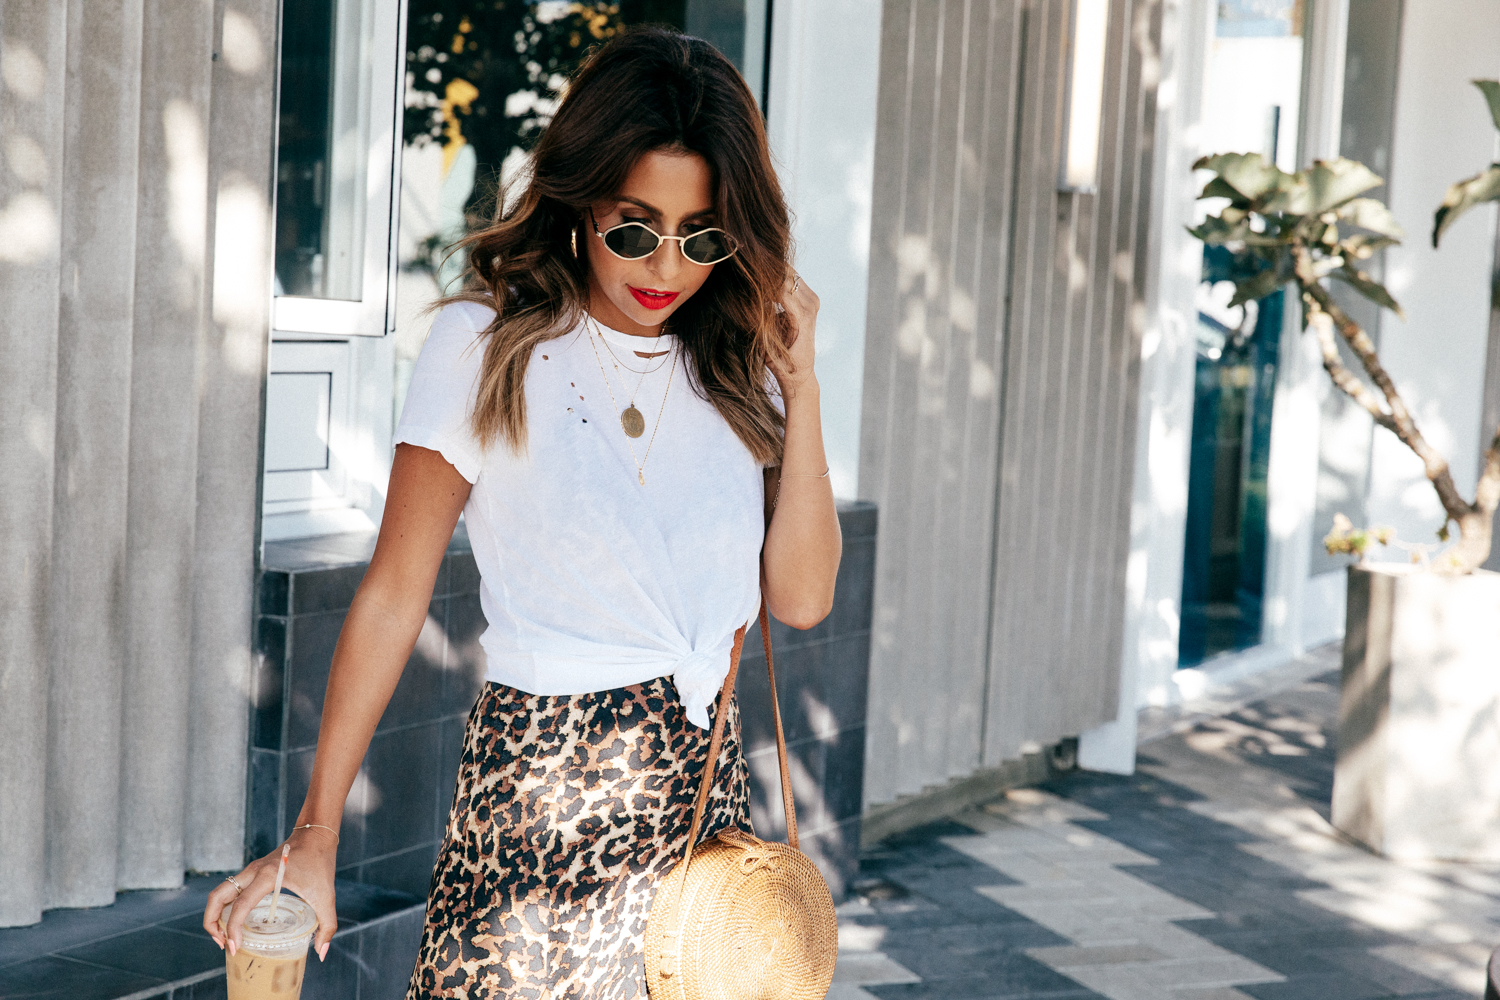 White T-shirt and leopard skirt outfit via Everyday Pursuits